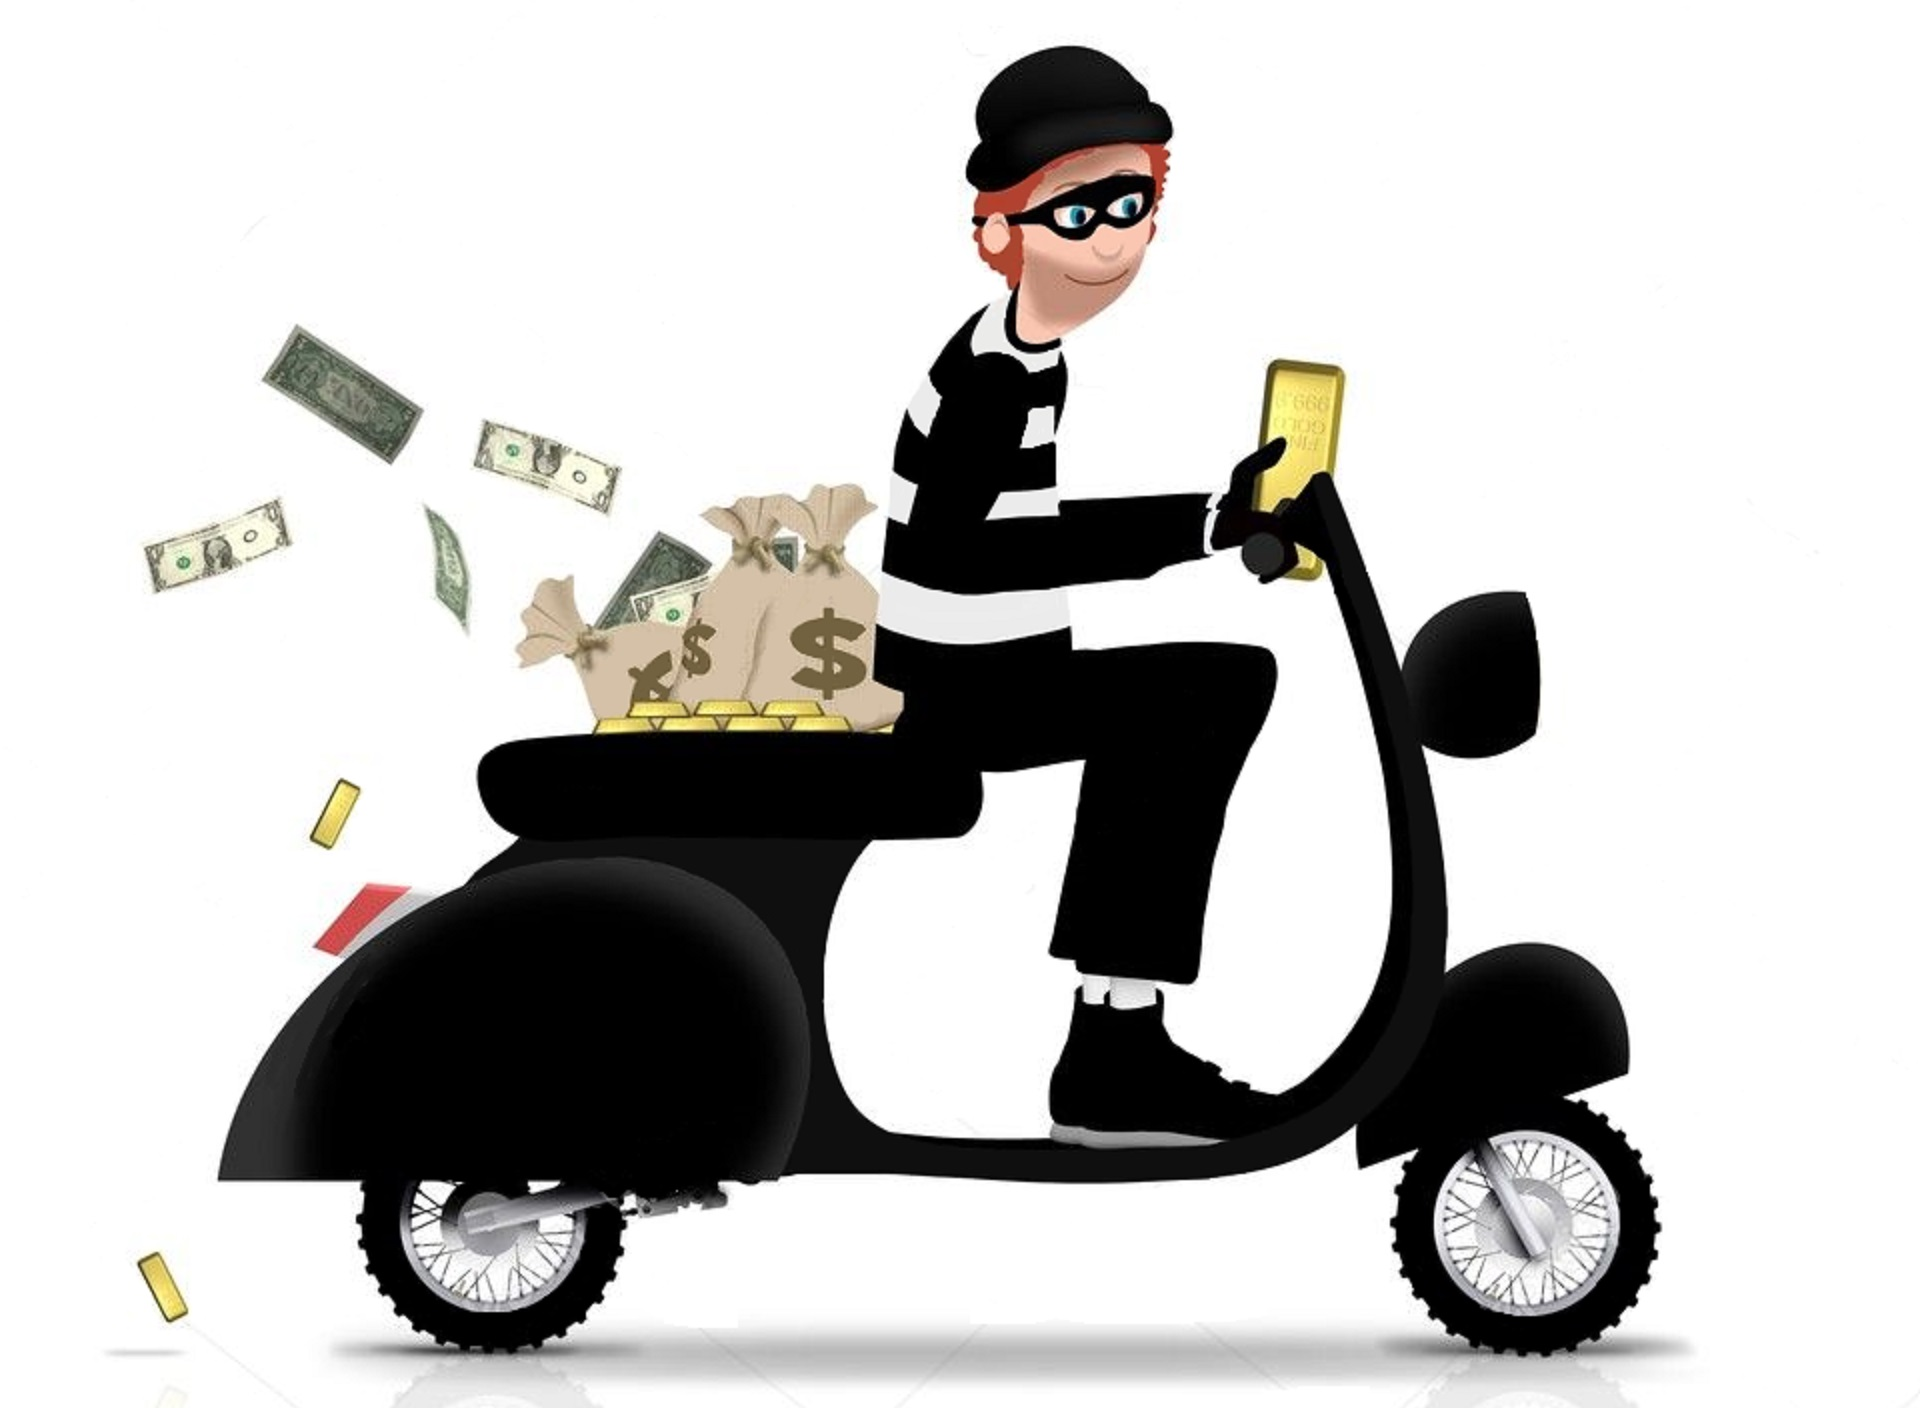 thief stealing motorcycle